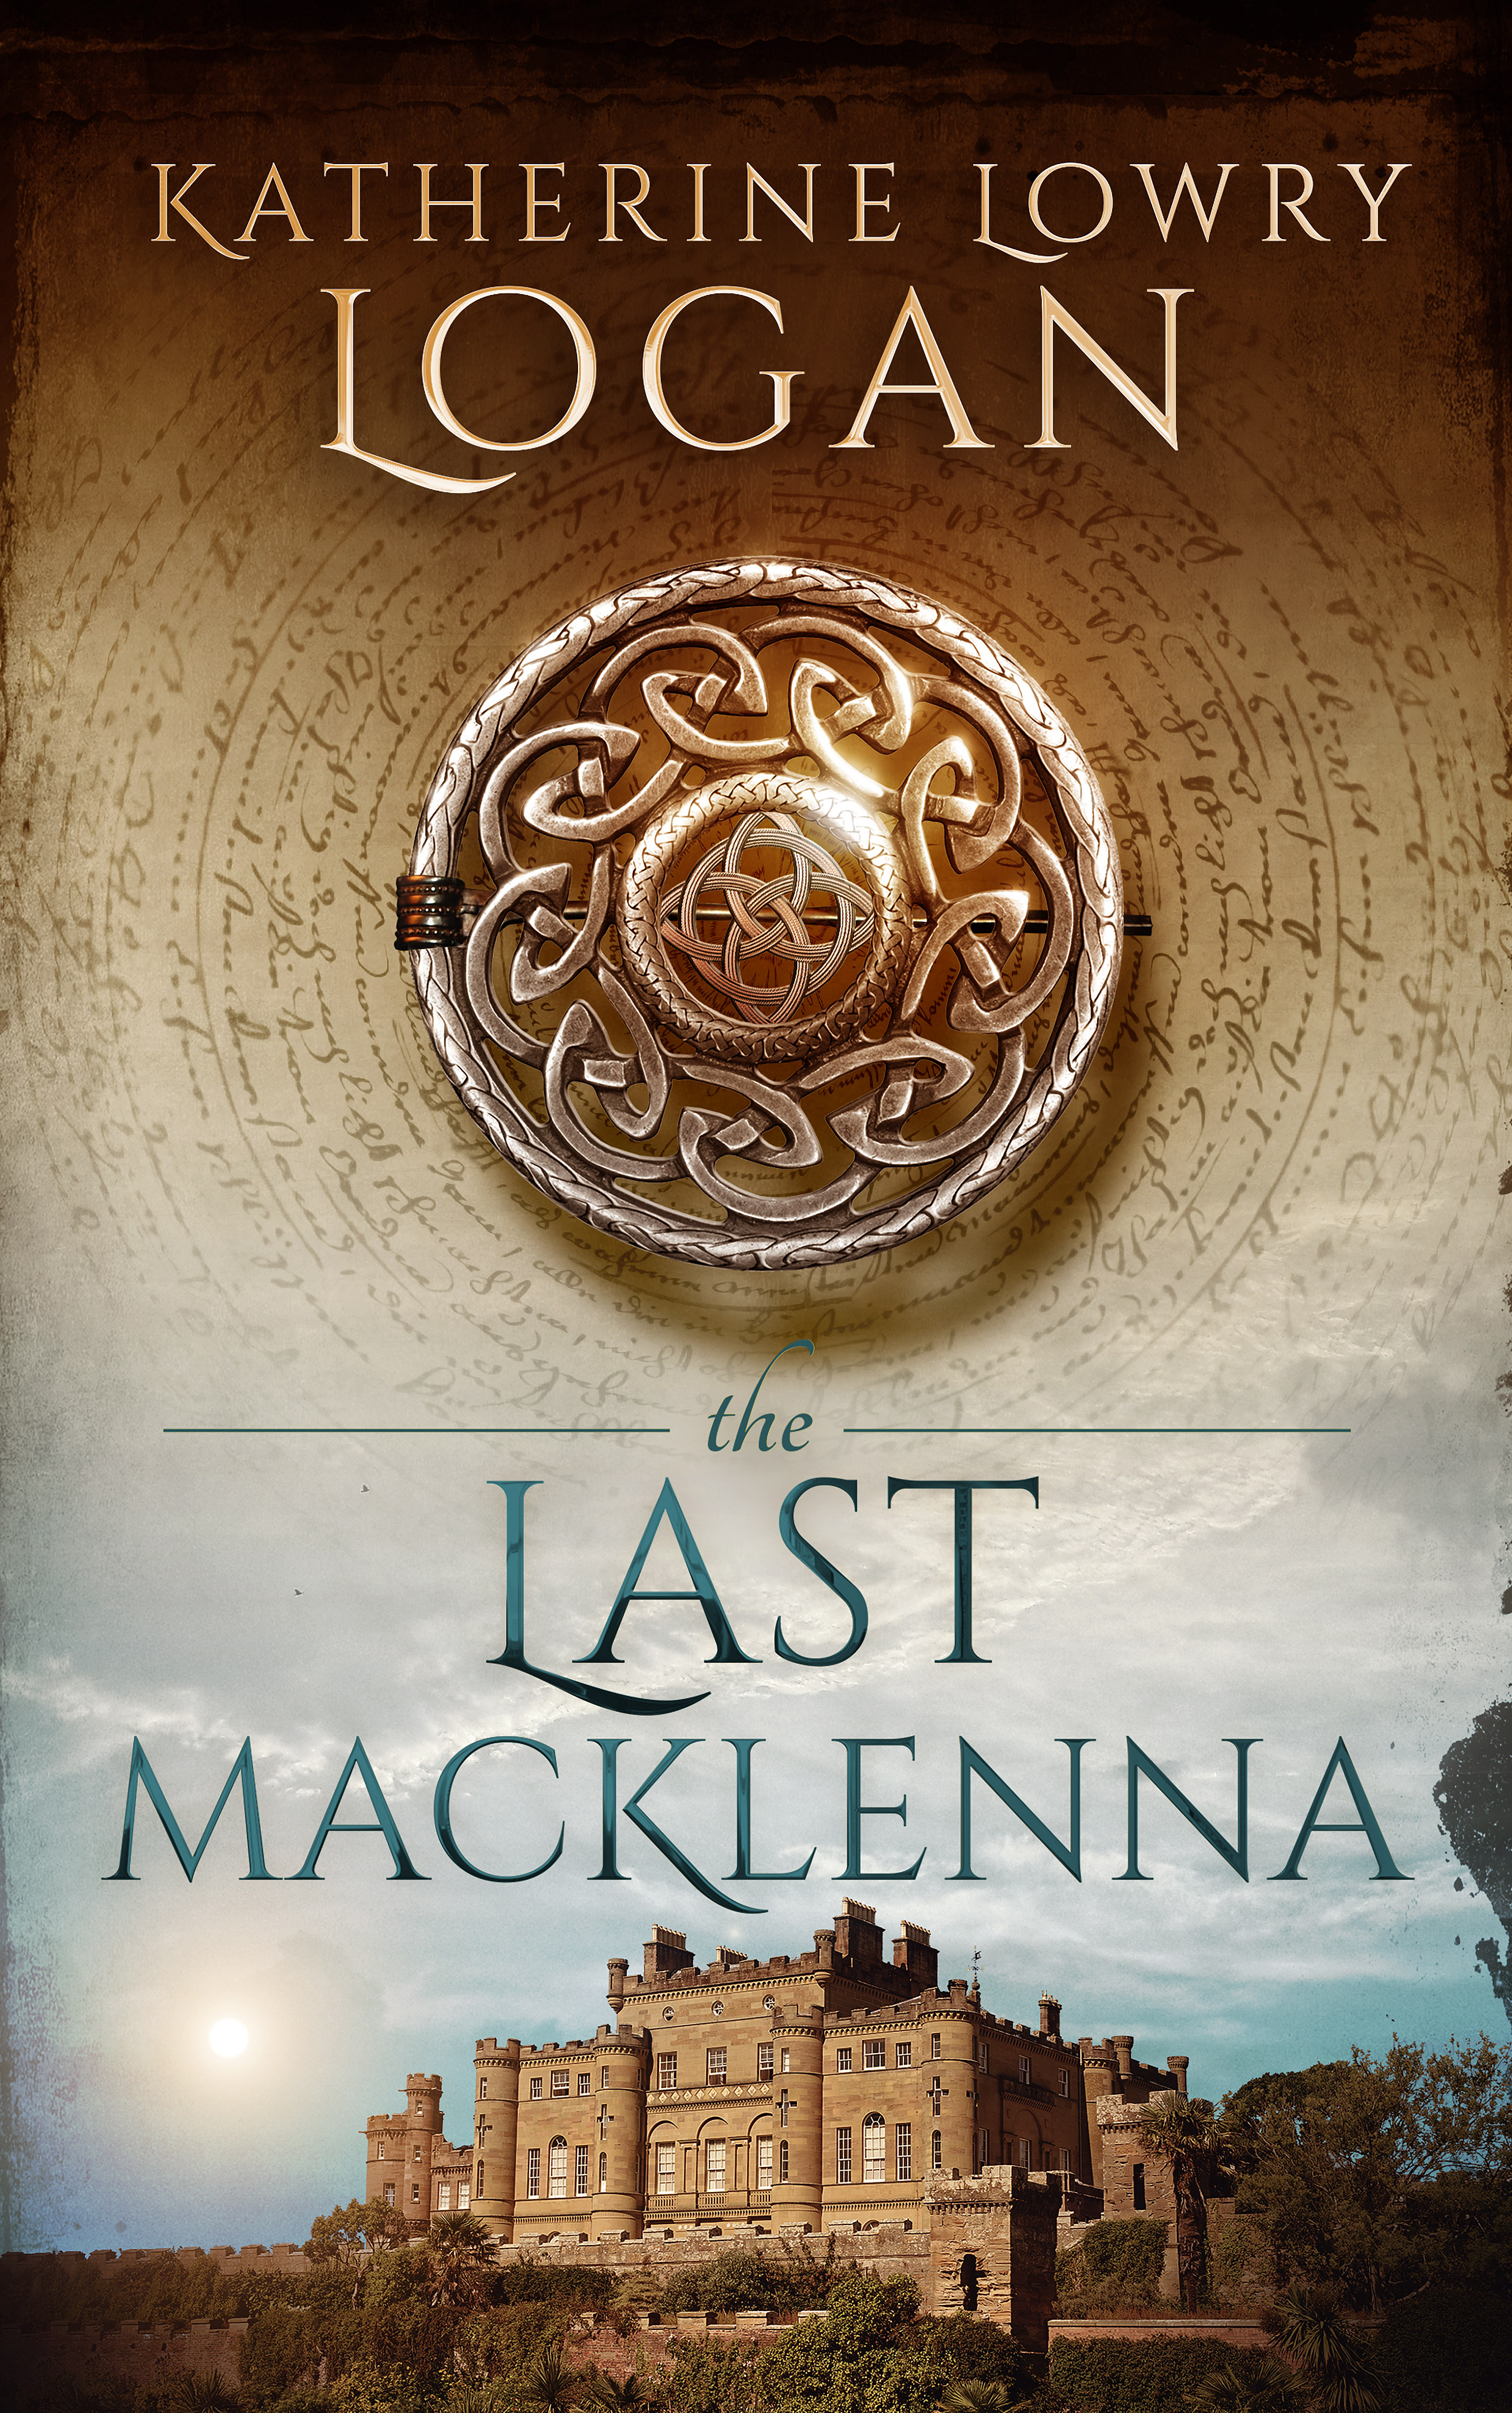 The Last Macklenna 2017 - Ebook